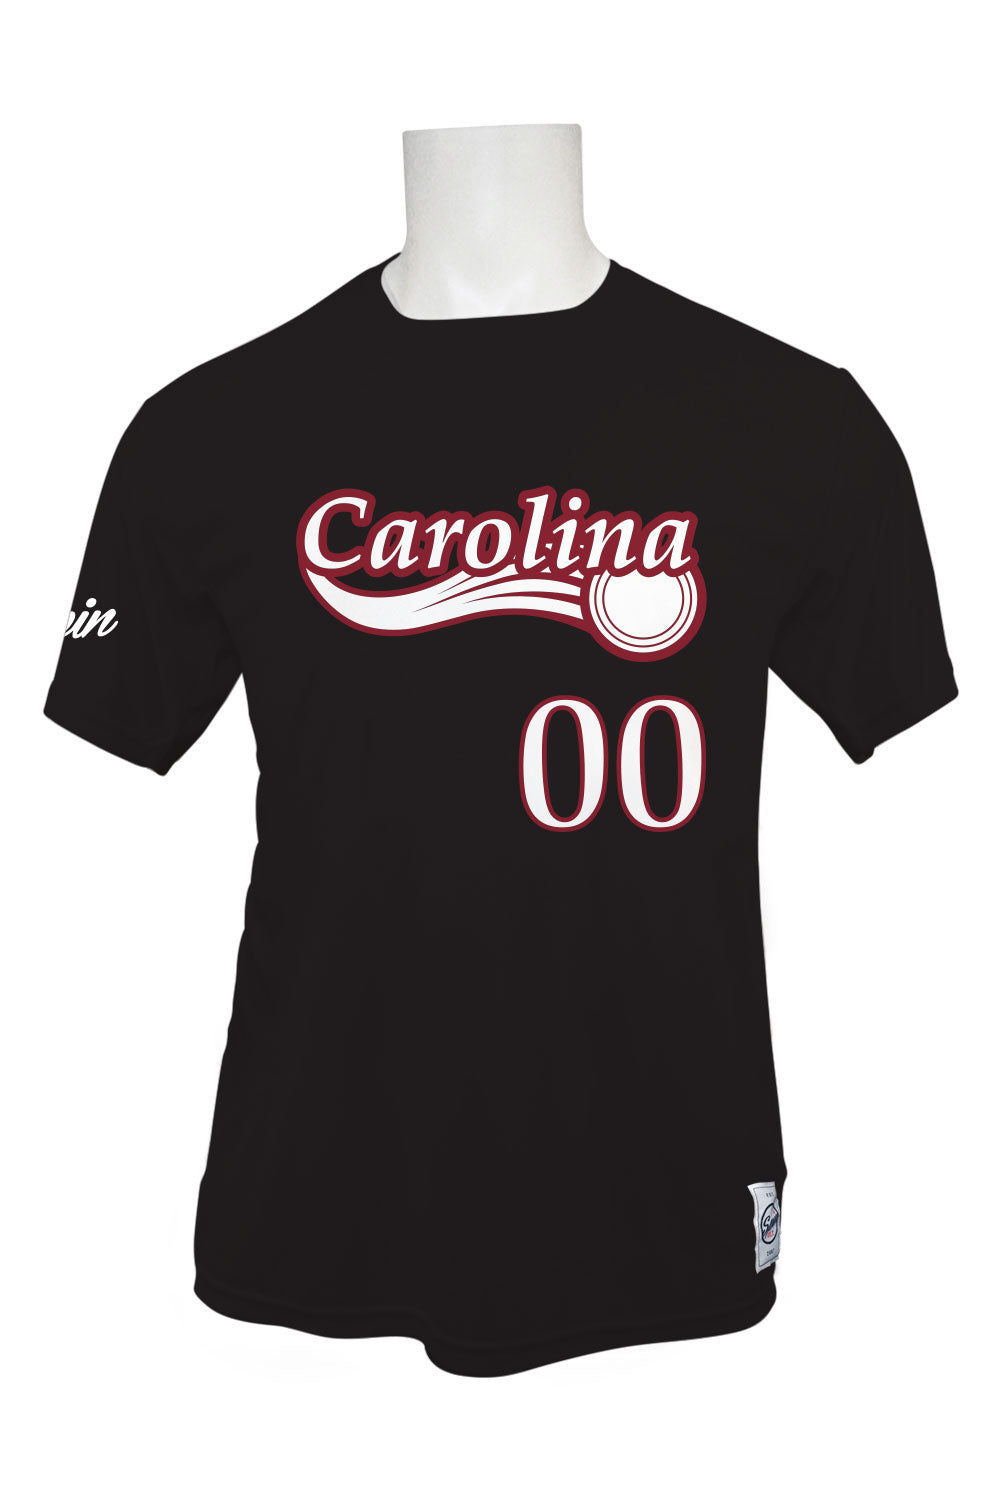 South Carolina Full Sub Short Sleeve Jersey